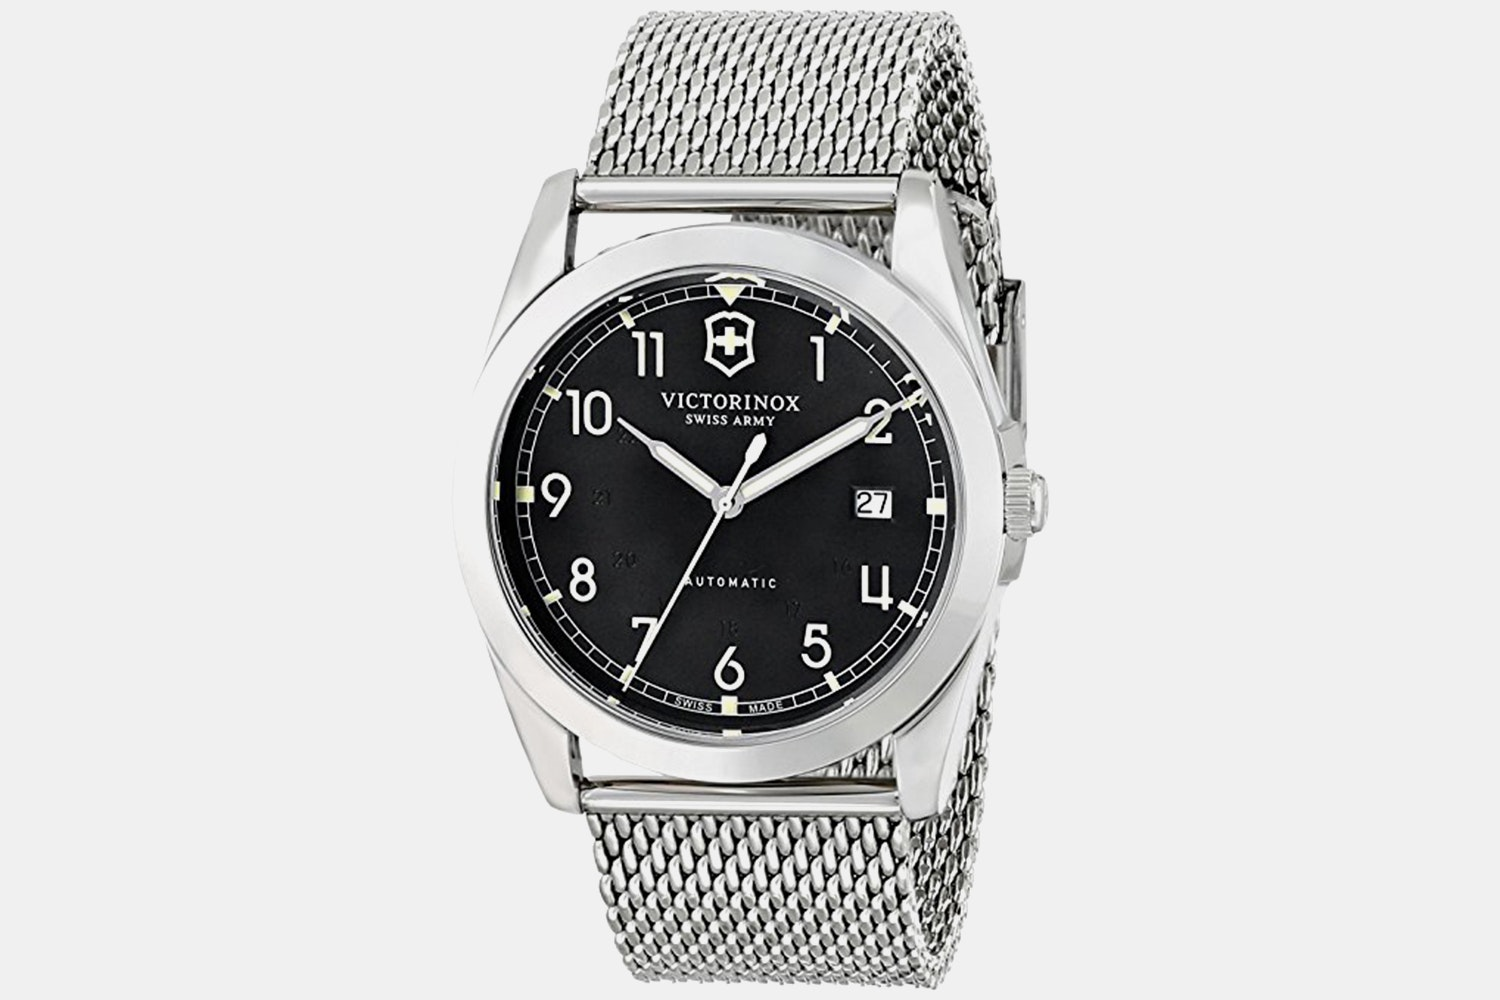 241587 (black dial, stainless steel bracelet)